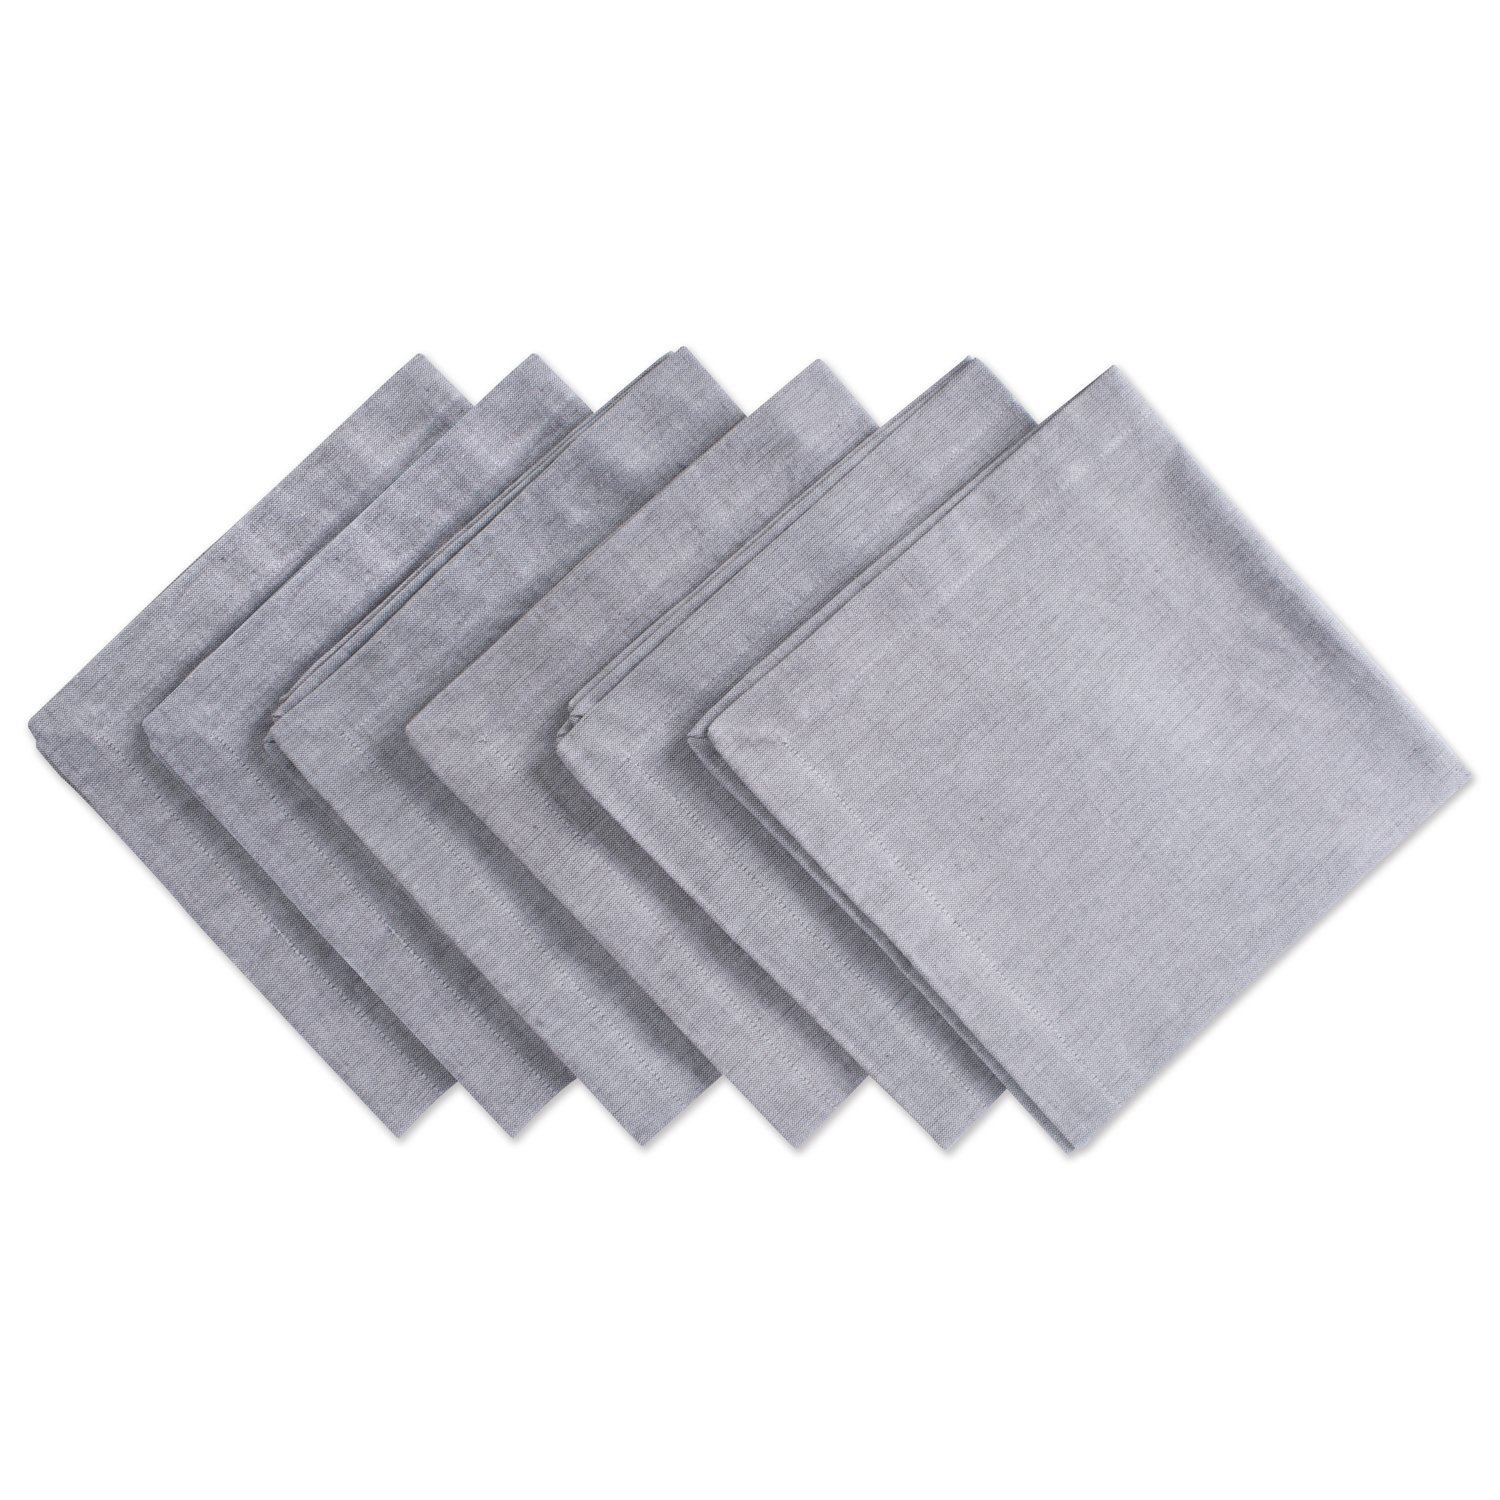 DII Chambray Pastel Basic Cloth Napkins for Everyday Place Settings with Woven Denum Look, Perfect for Weddings, Buffets, Parties, Formal Meals (20x20 Large, Set of 6) Gray by DII